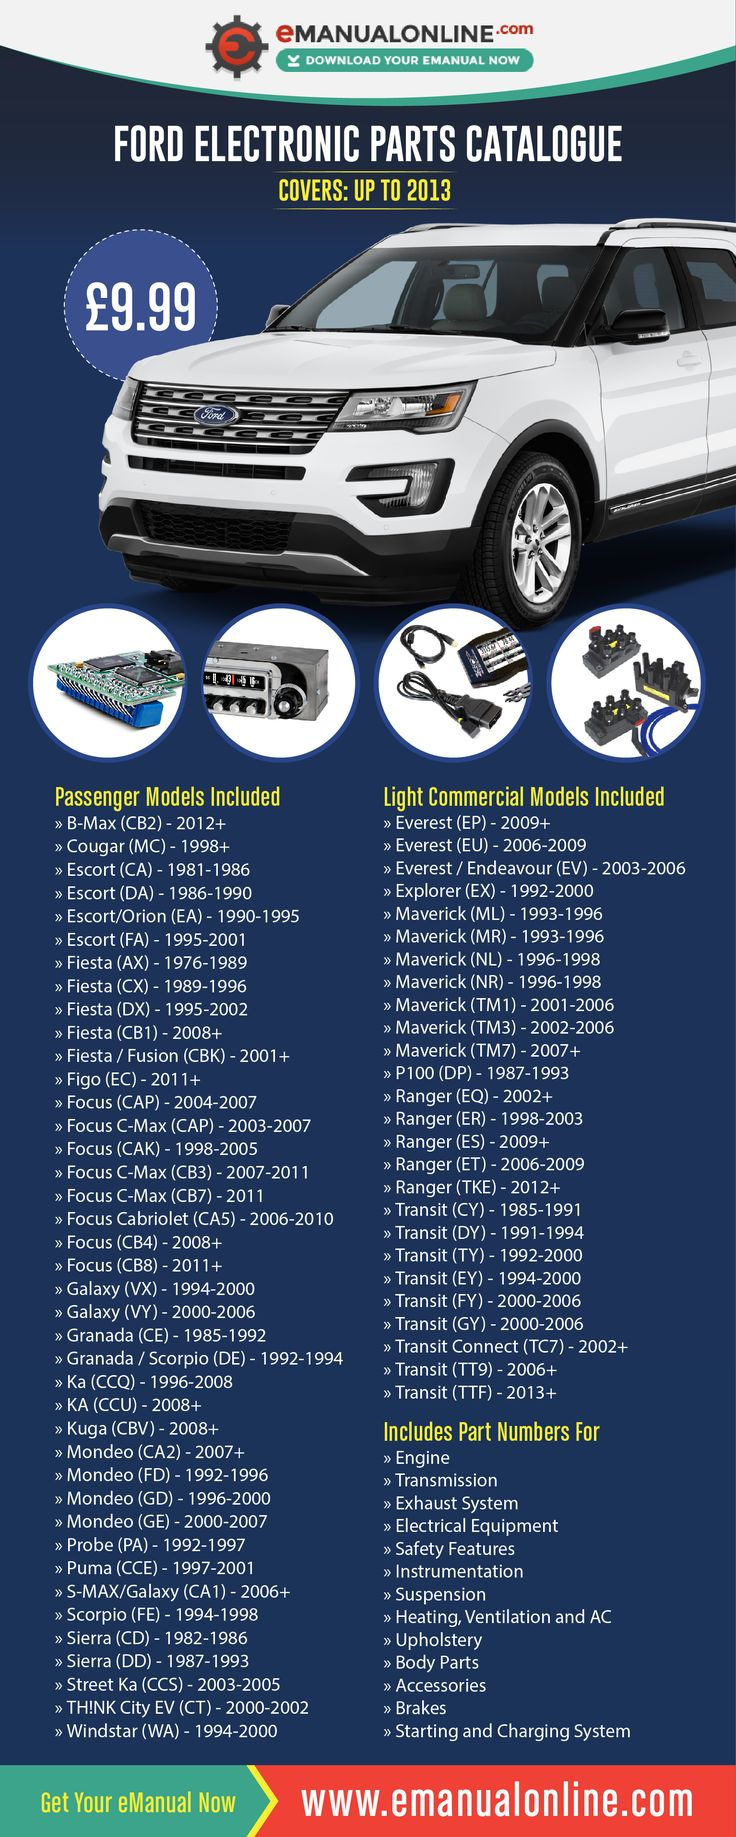 Ford Electronic Parts Catalogue  With this electronic parts catalogue, not only can you save a heap of time, but money also. As they say, time is money. Have the part numbers ready, before you go to the dealership with this catalogue.